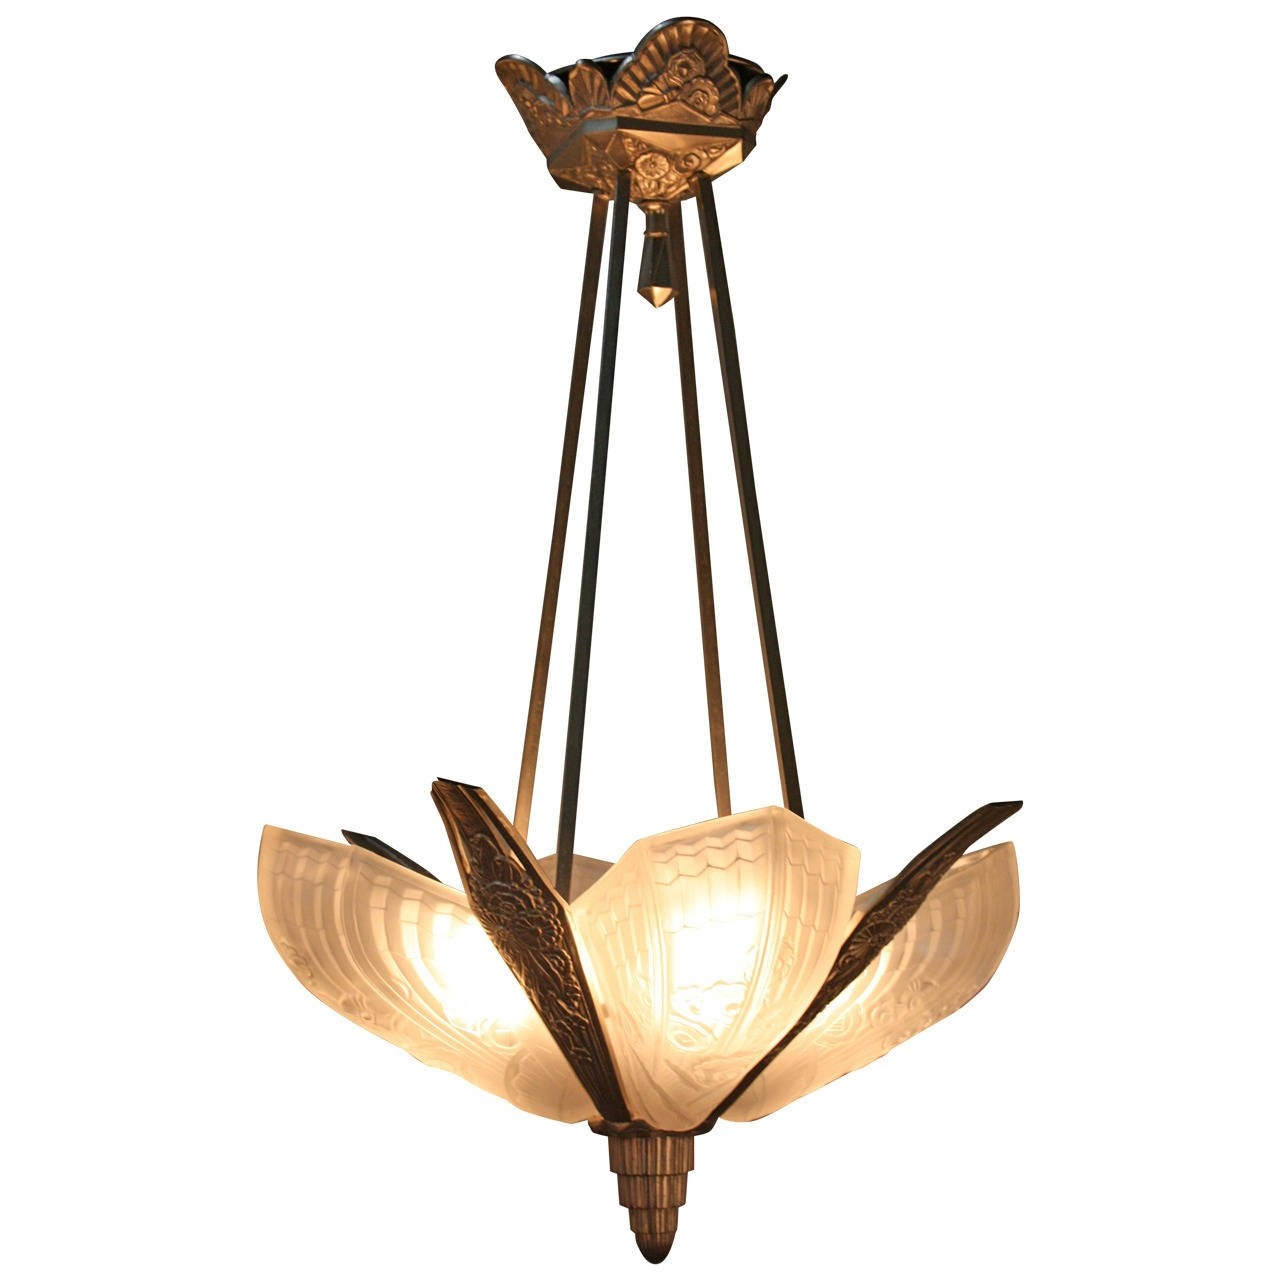 1920s Art Deco Chandelier At 1stdibs Regarding Art Deco Chandelier (#1 of 12)